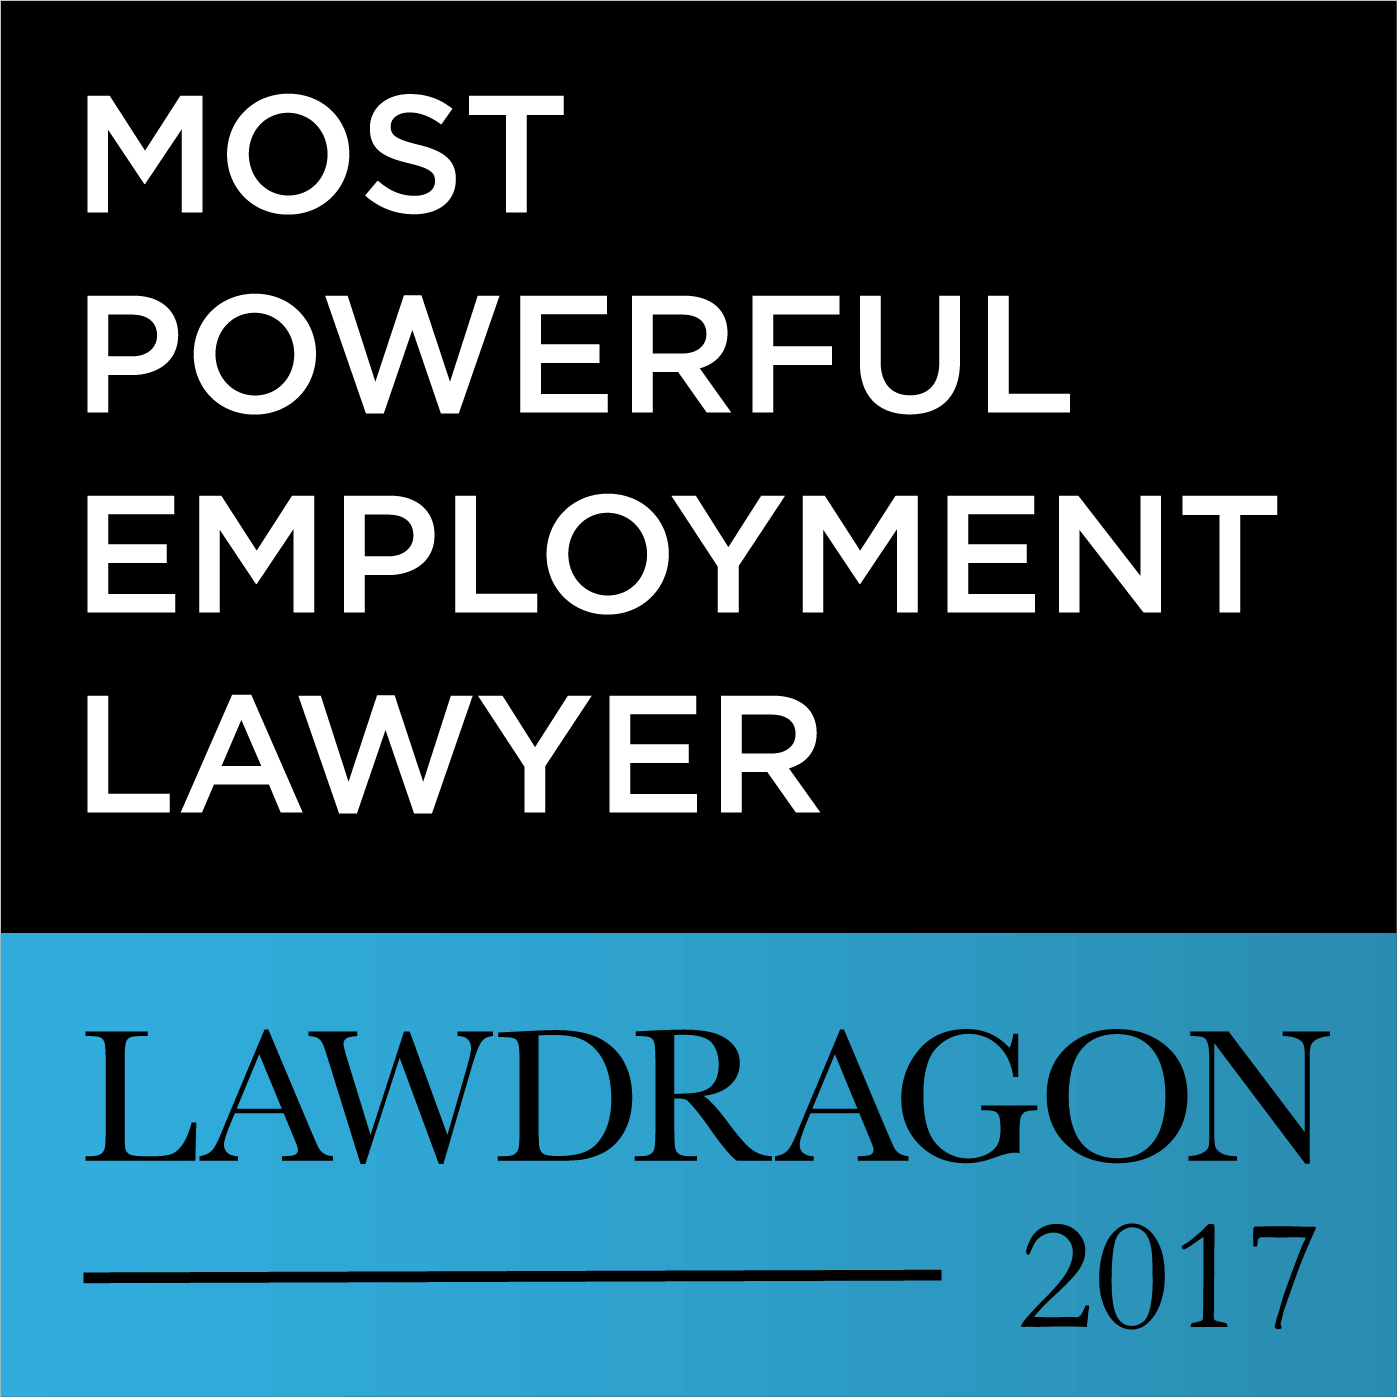 Lawdragon Most Powerful Employment Lawyer